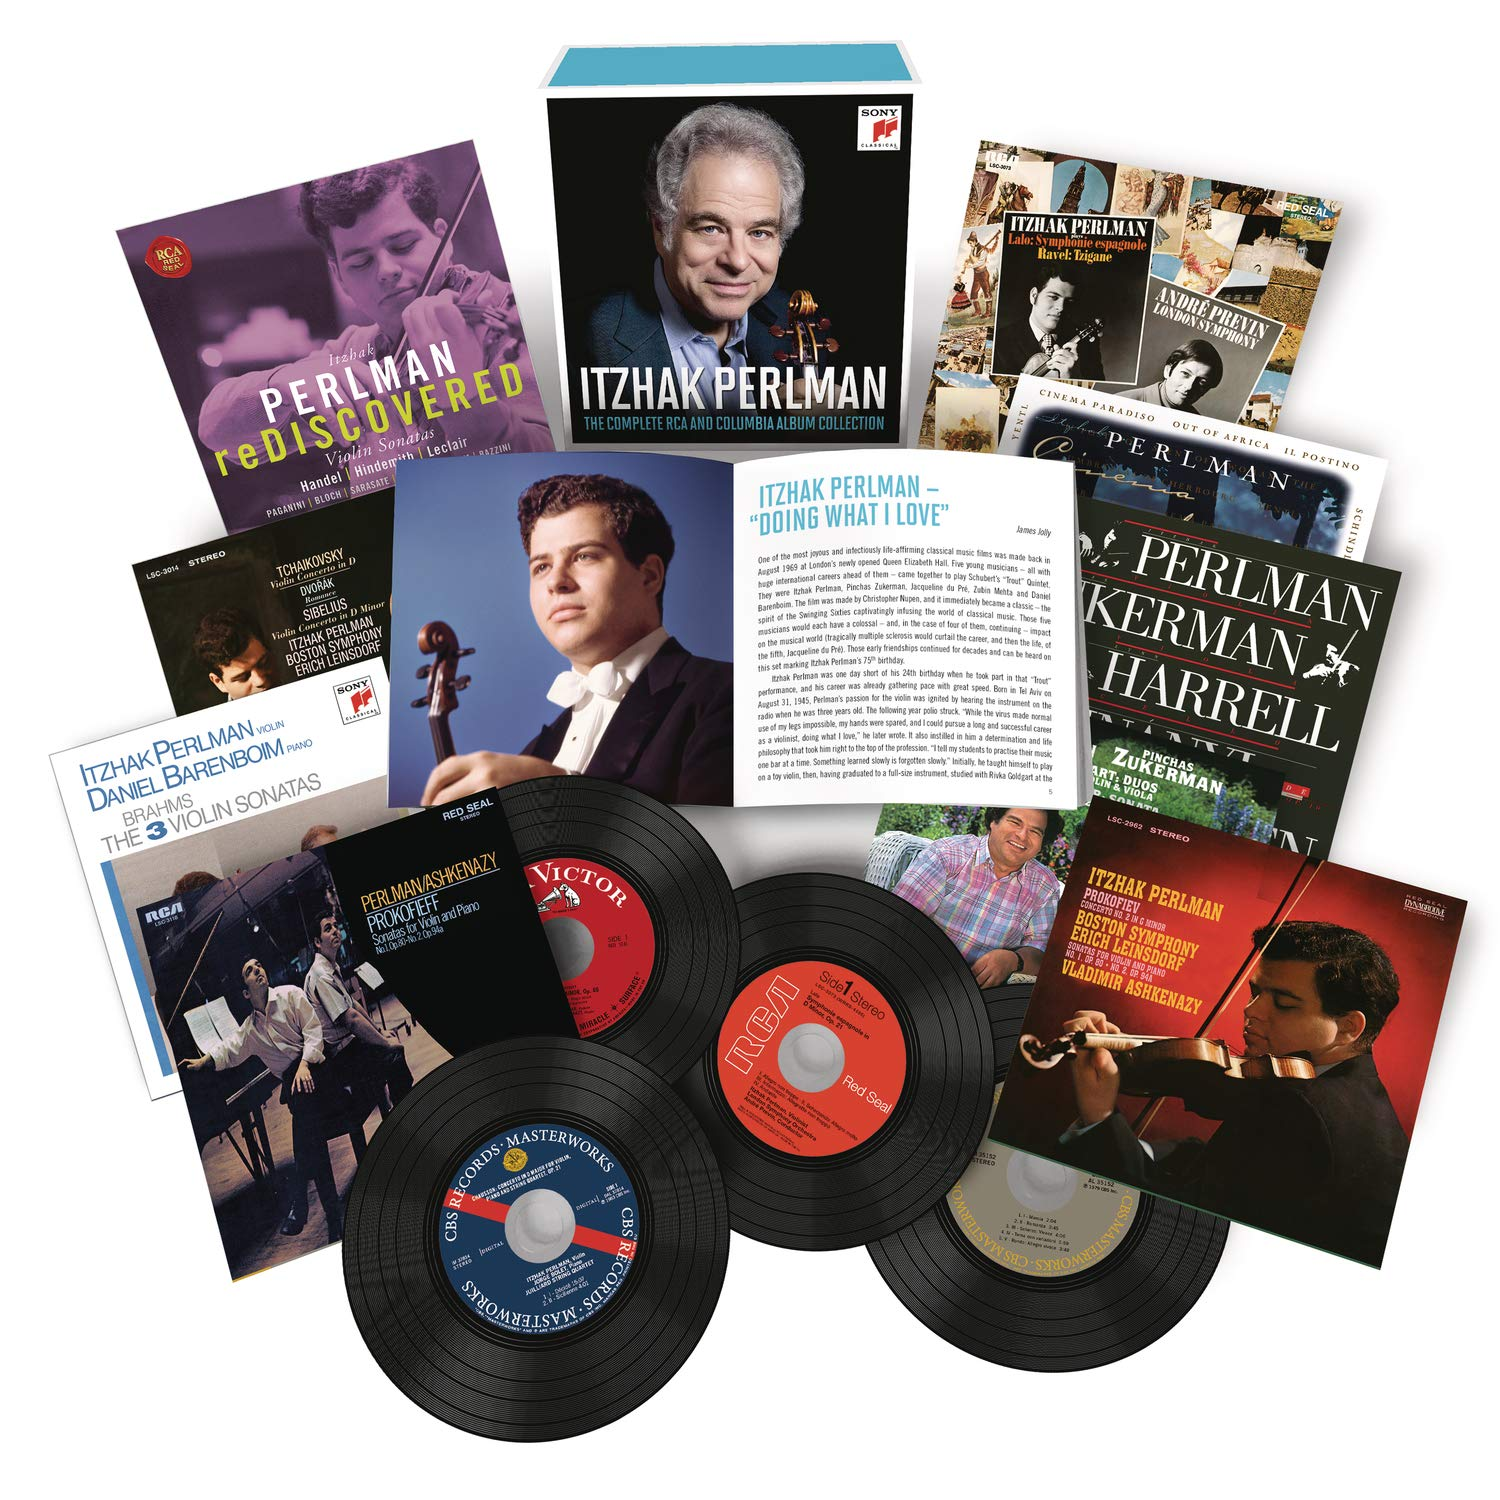 Itzhak Perlman - Itzhak Perlman - The Complete RCA and Columbia Album Collection